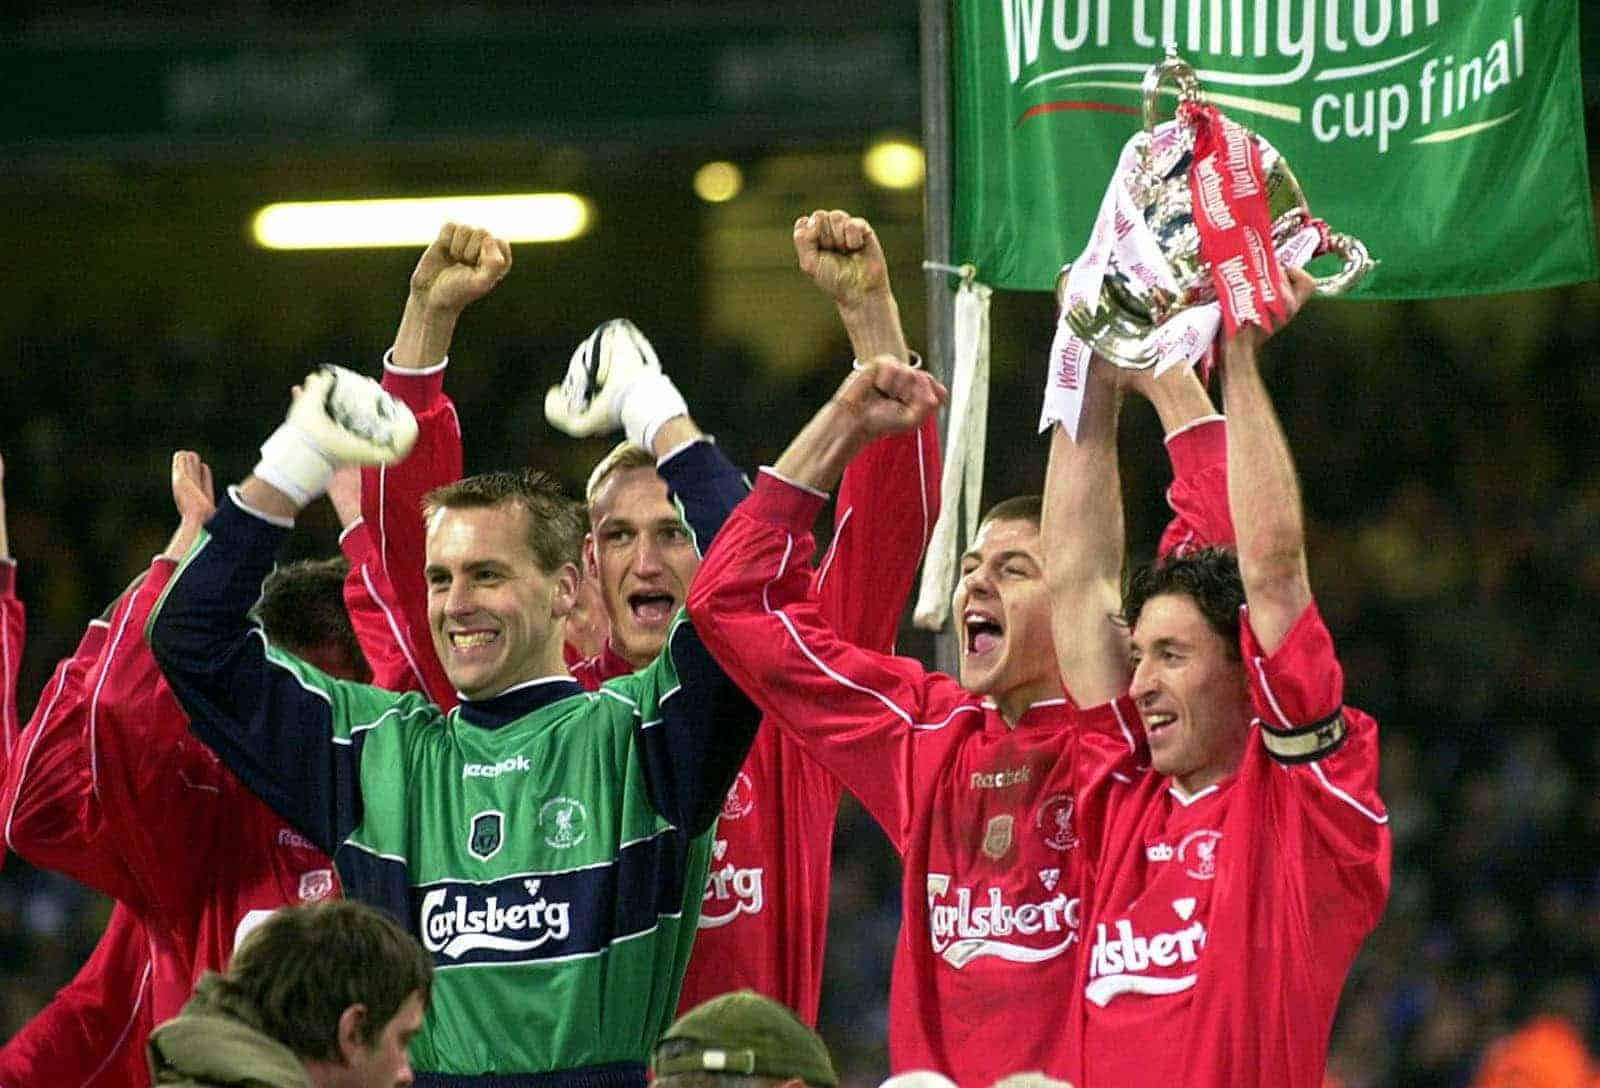 Robbie Fowler holds up the Worthington Cup after his side beat Birmingham City following a penalty shoot-out in the Final, at the Millennium Stadium, in Cardiff. 25-Feb-2001 (Picture by David Jones PA Archive/PA Images)